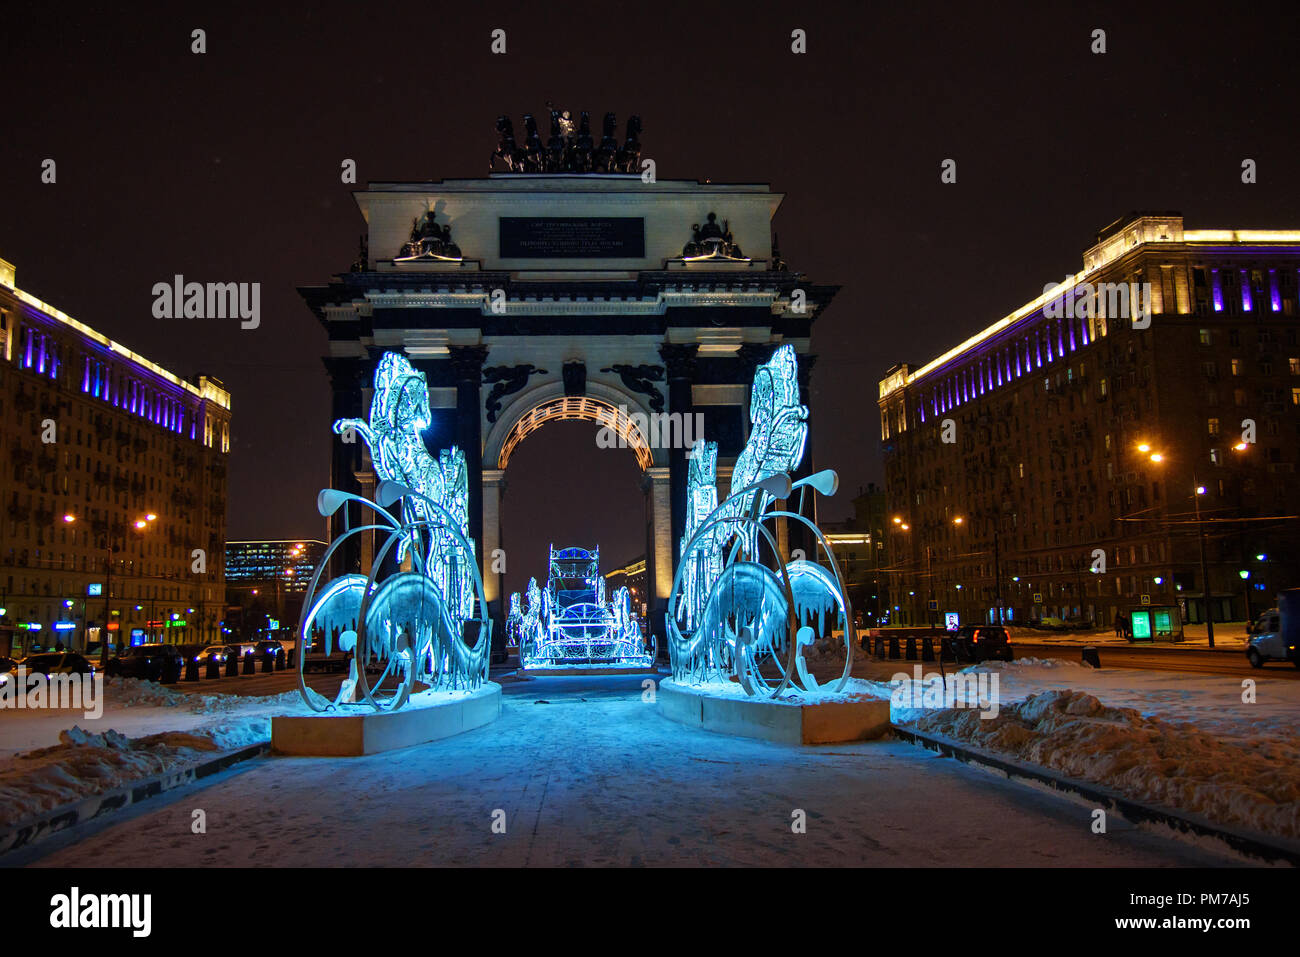 Moscow, Russia - January 29, 2018: Triumphal Arch with Christmas and New years illuminations decoration at night - Stock Image